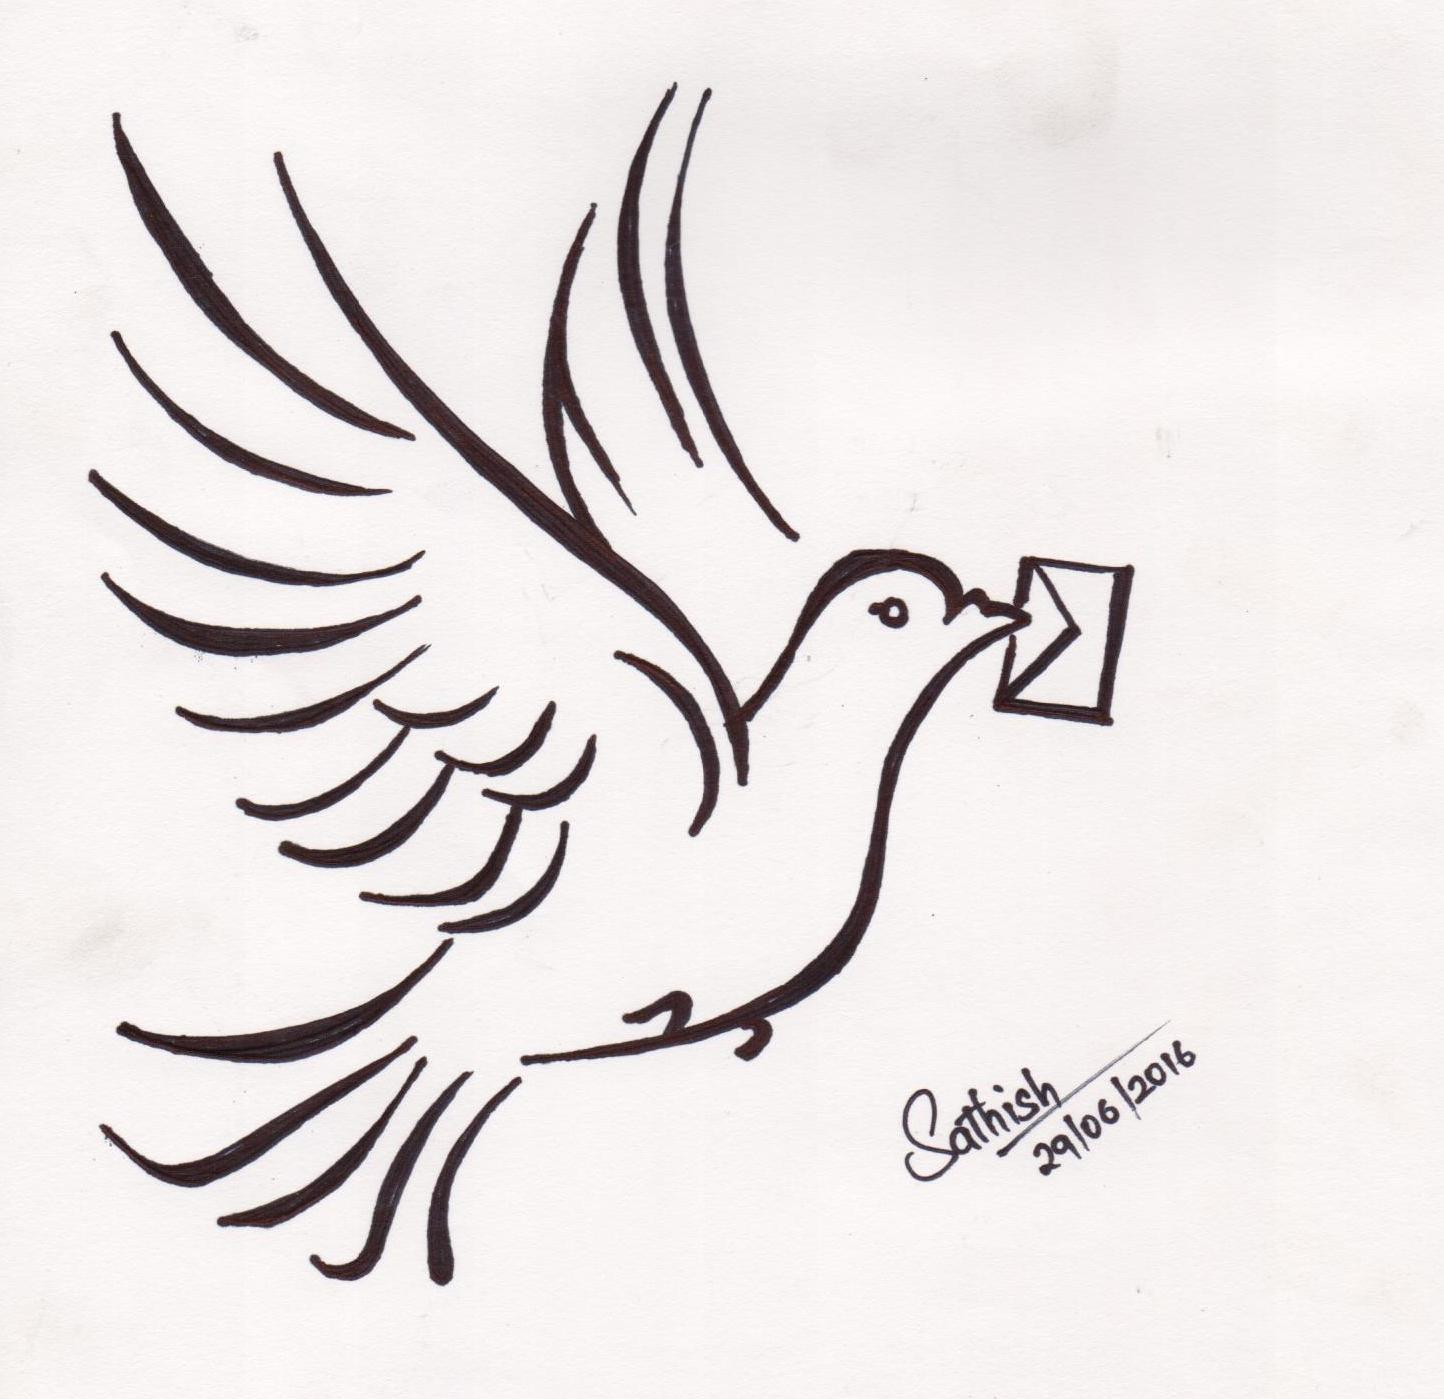 Pigeon Art Sathishlive Art Sketch Instapic Drawing Picture